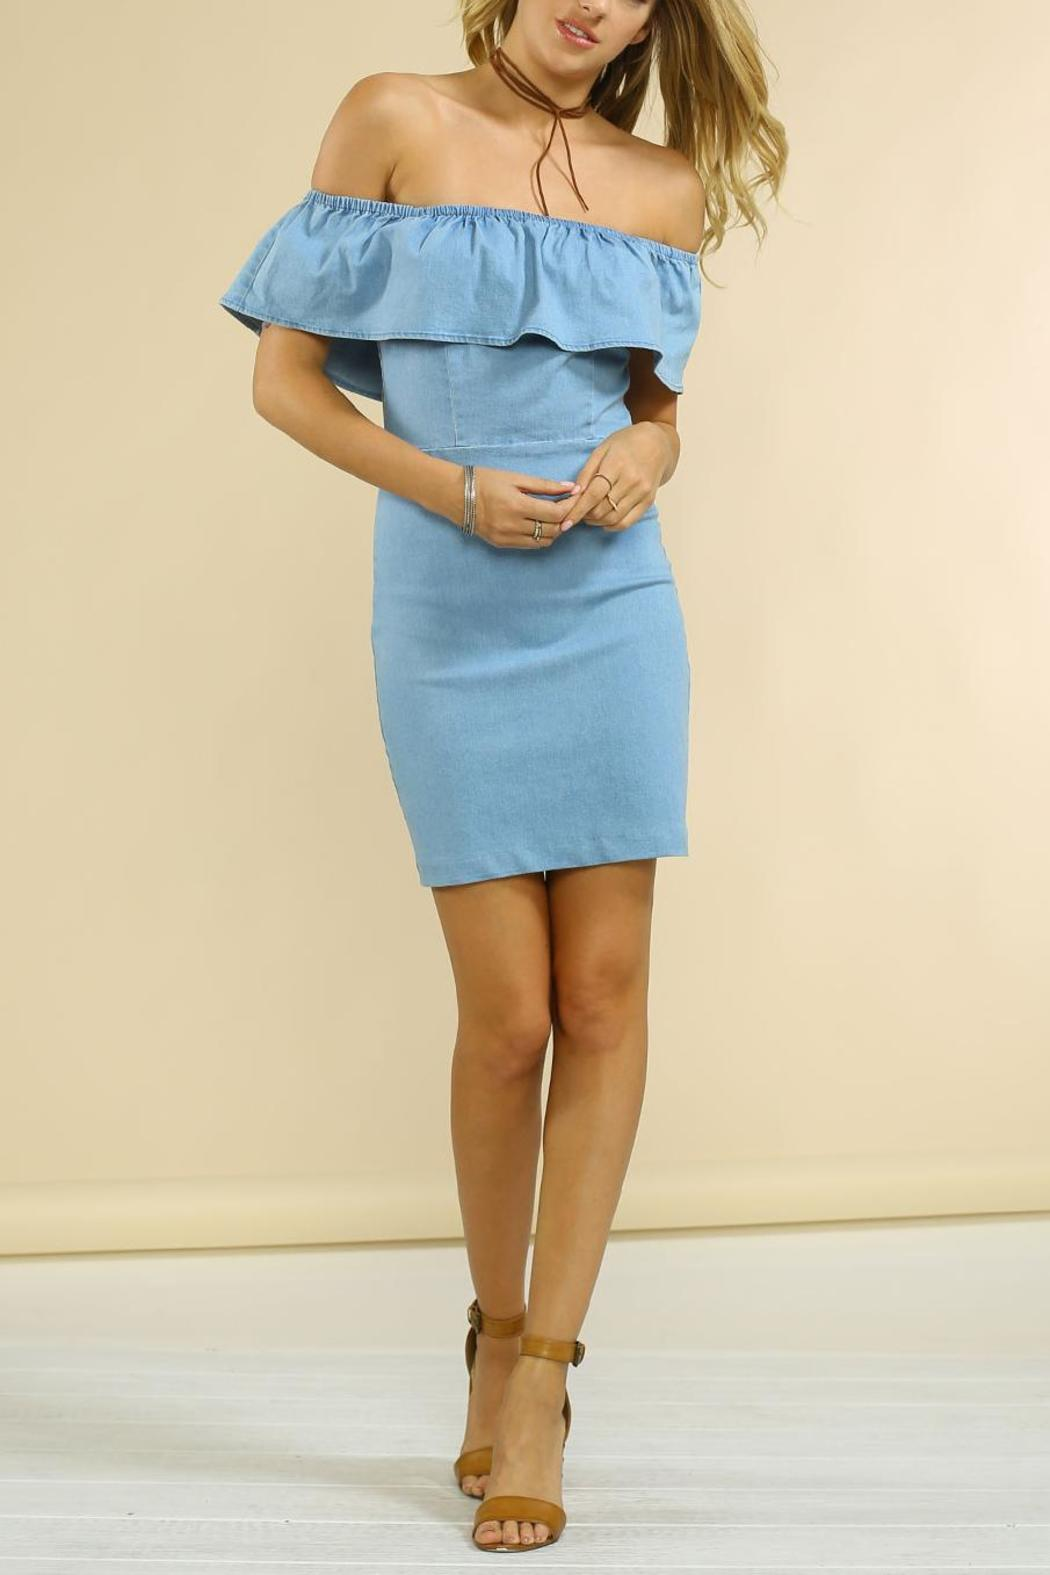 Jealous Tomato Denim Ruffle Dress from New York City by Suite275 ...